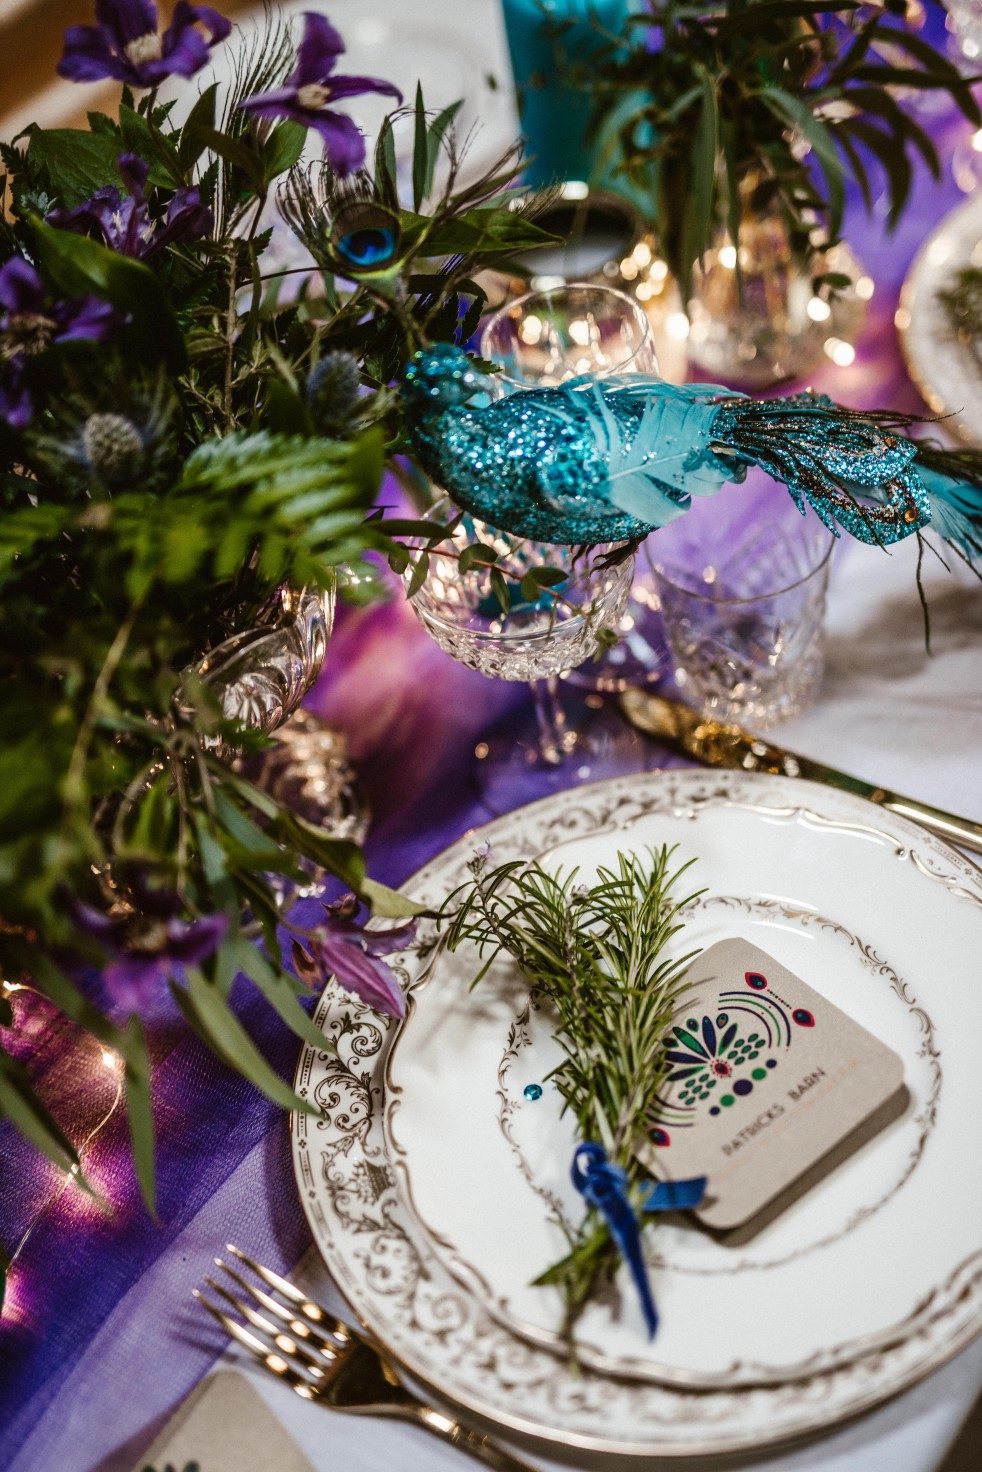 Peacock barns - alternative unconventional wedding photoshoot - rustic decadent - peacock inspired table place setting